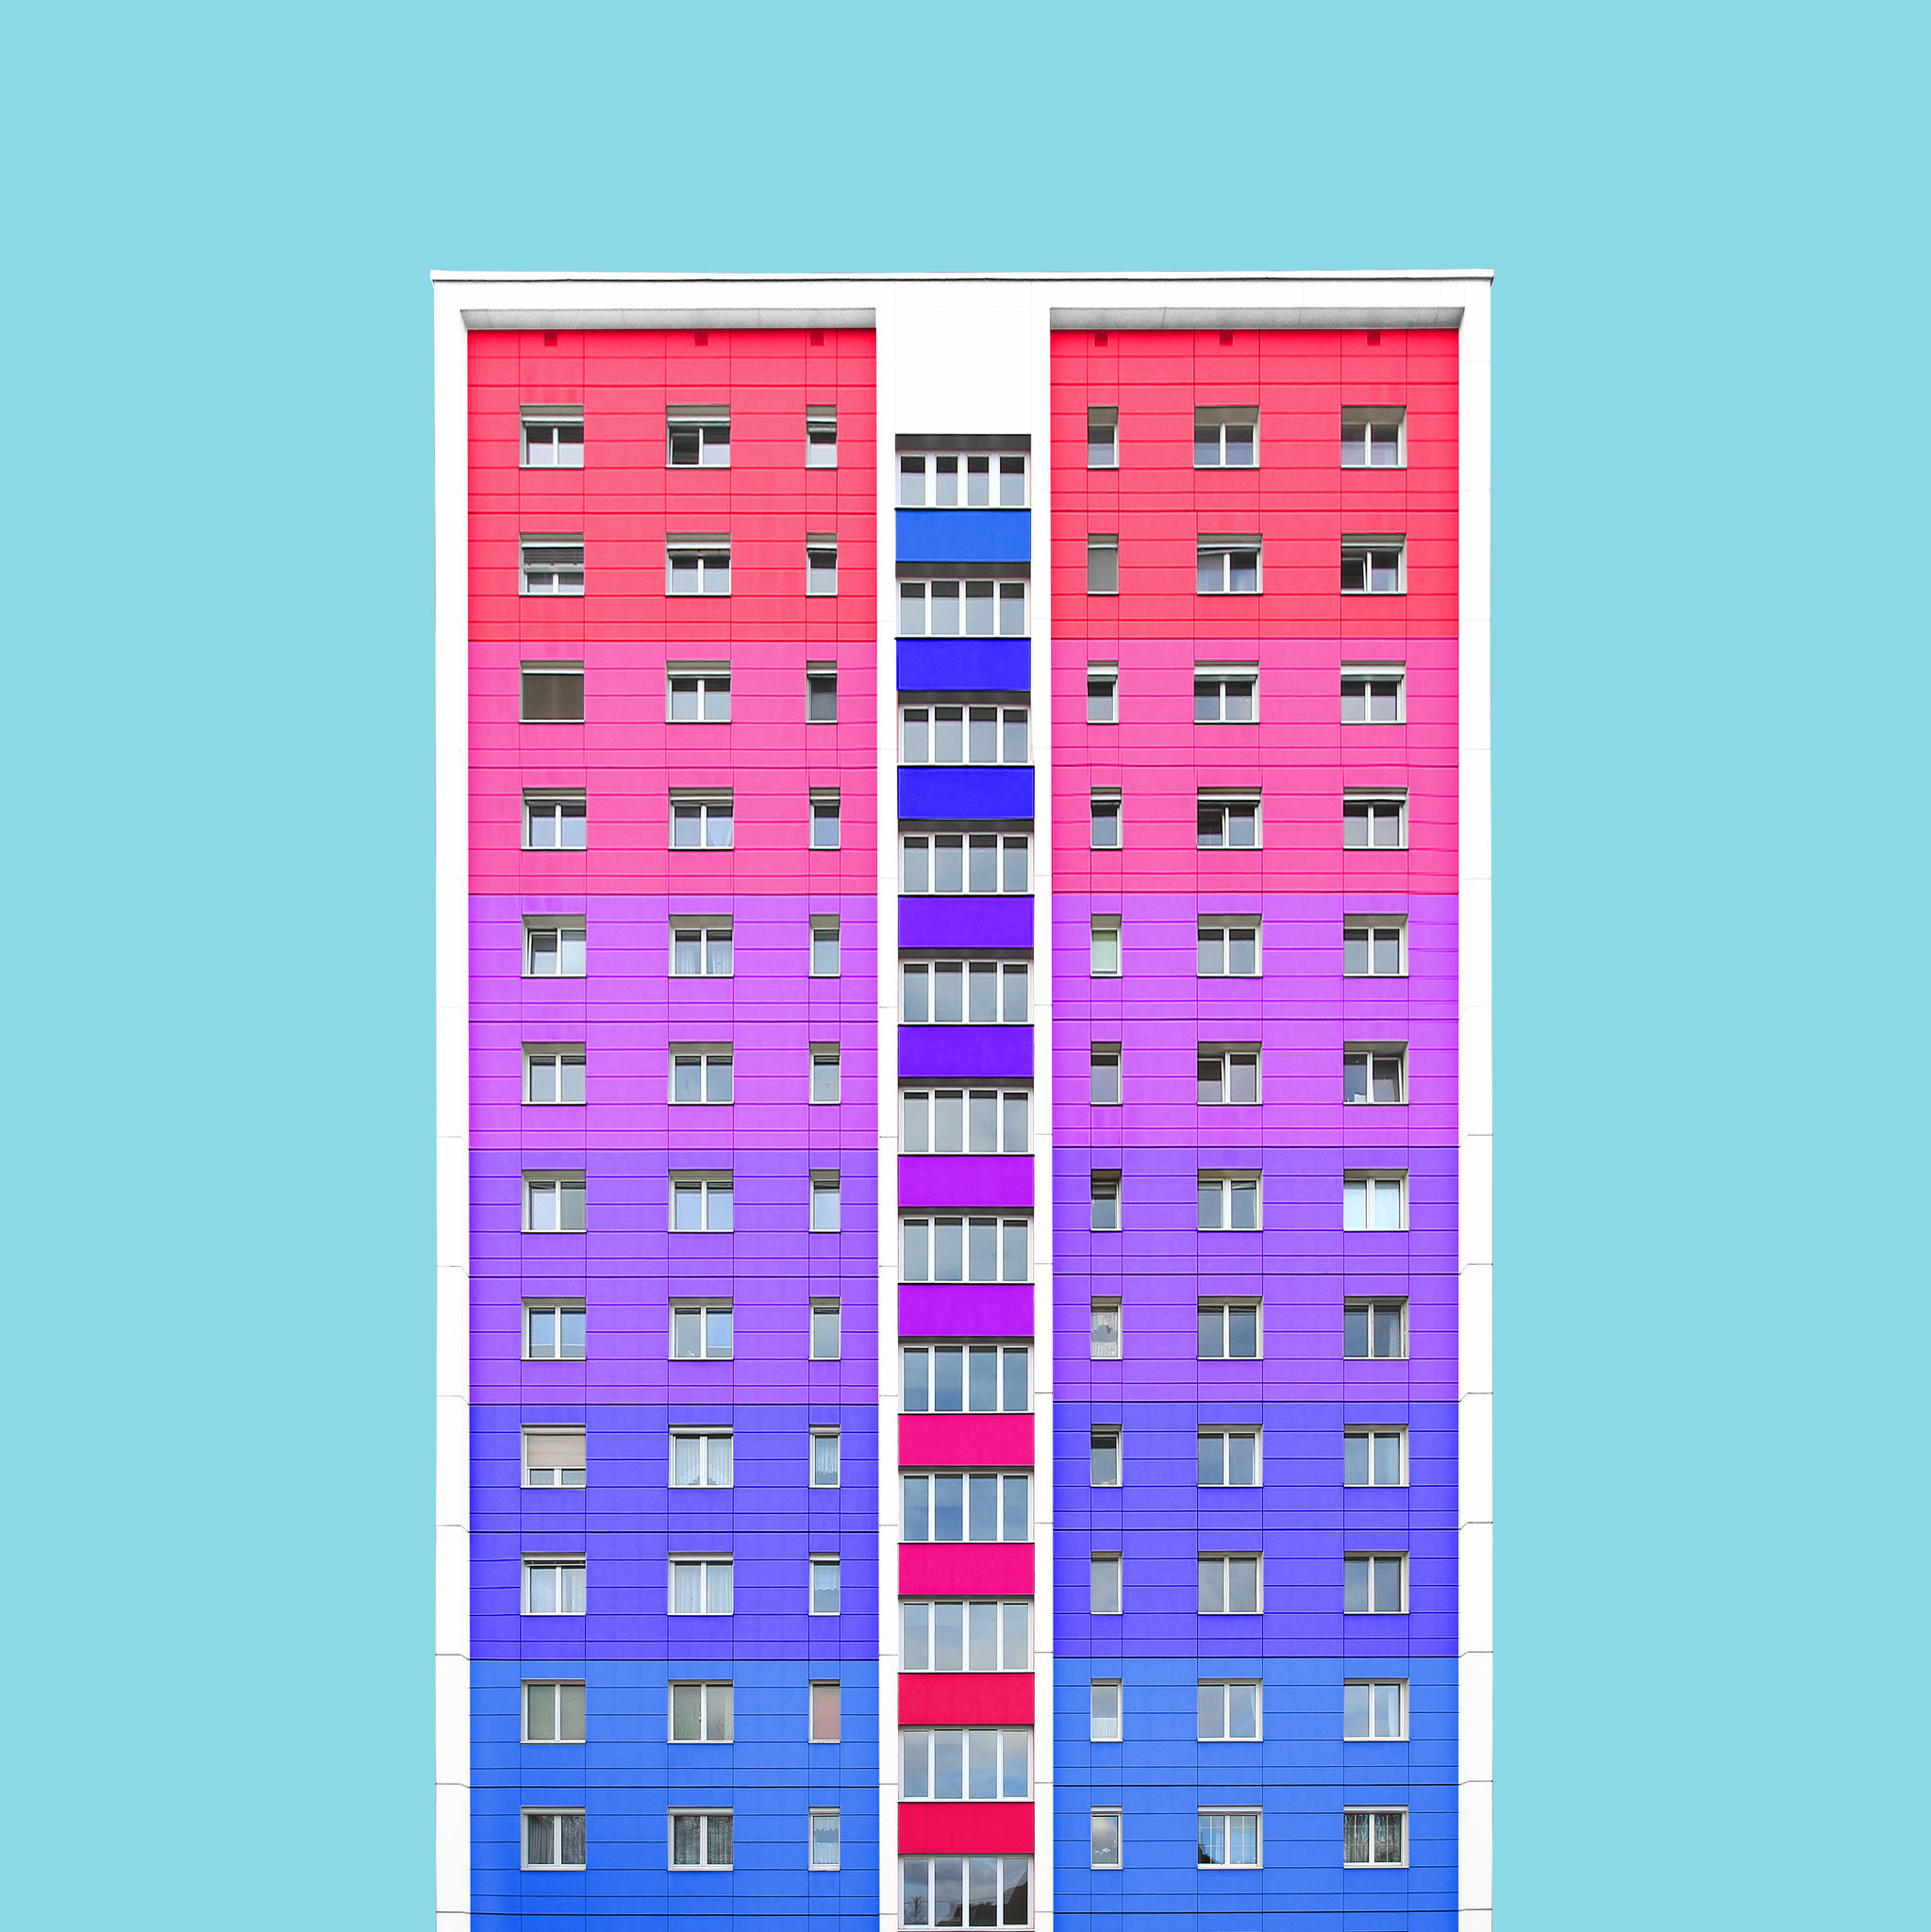 How the World Would Look Like with Vibrant Colorful Architecture colorful architecture How the World Would Look Like with Vibrant Colorful Architecture How the World Would Look Like with Vibrant Colorful Architecture 7